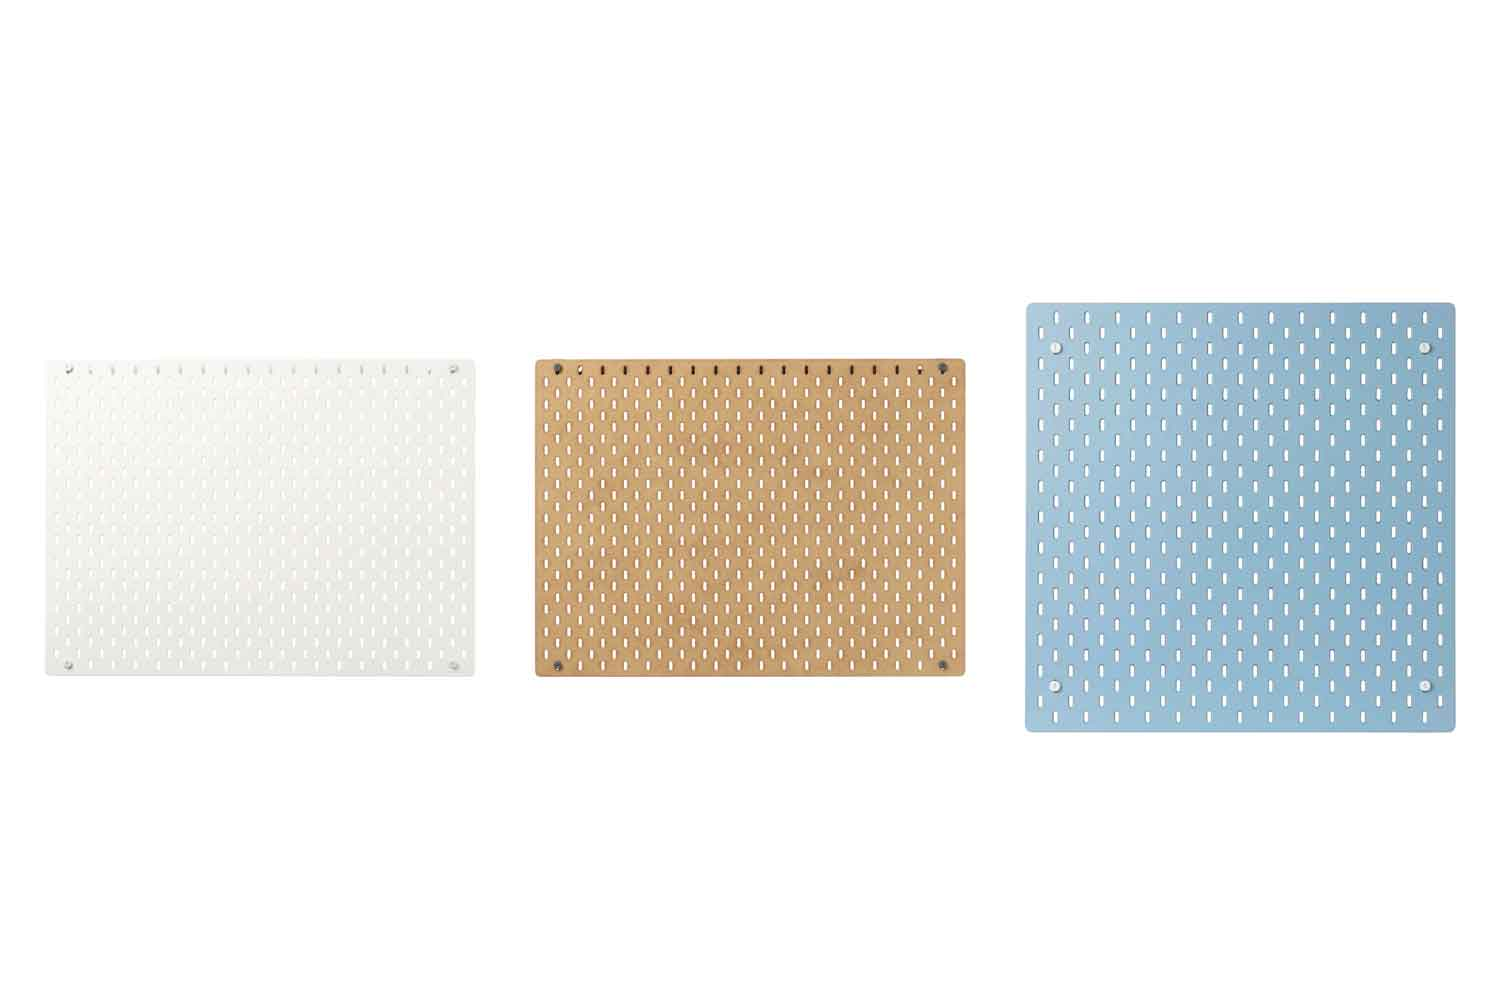 skadis board options in white, brown, and blue